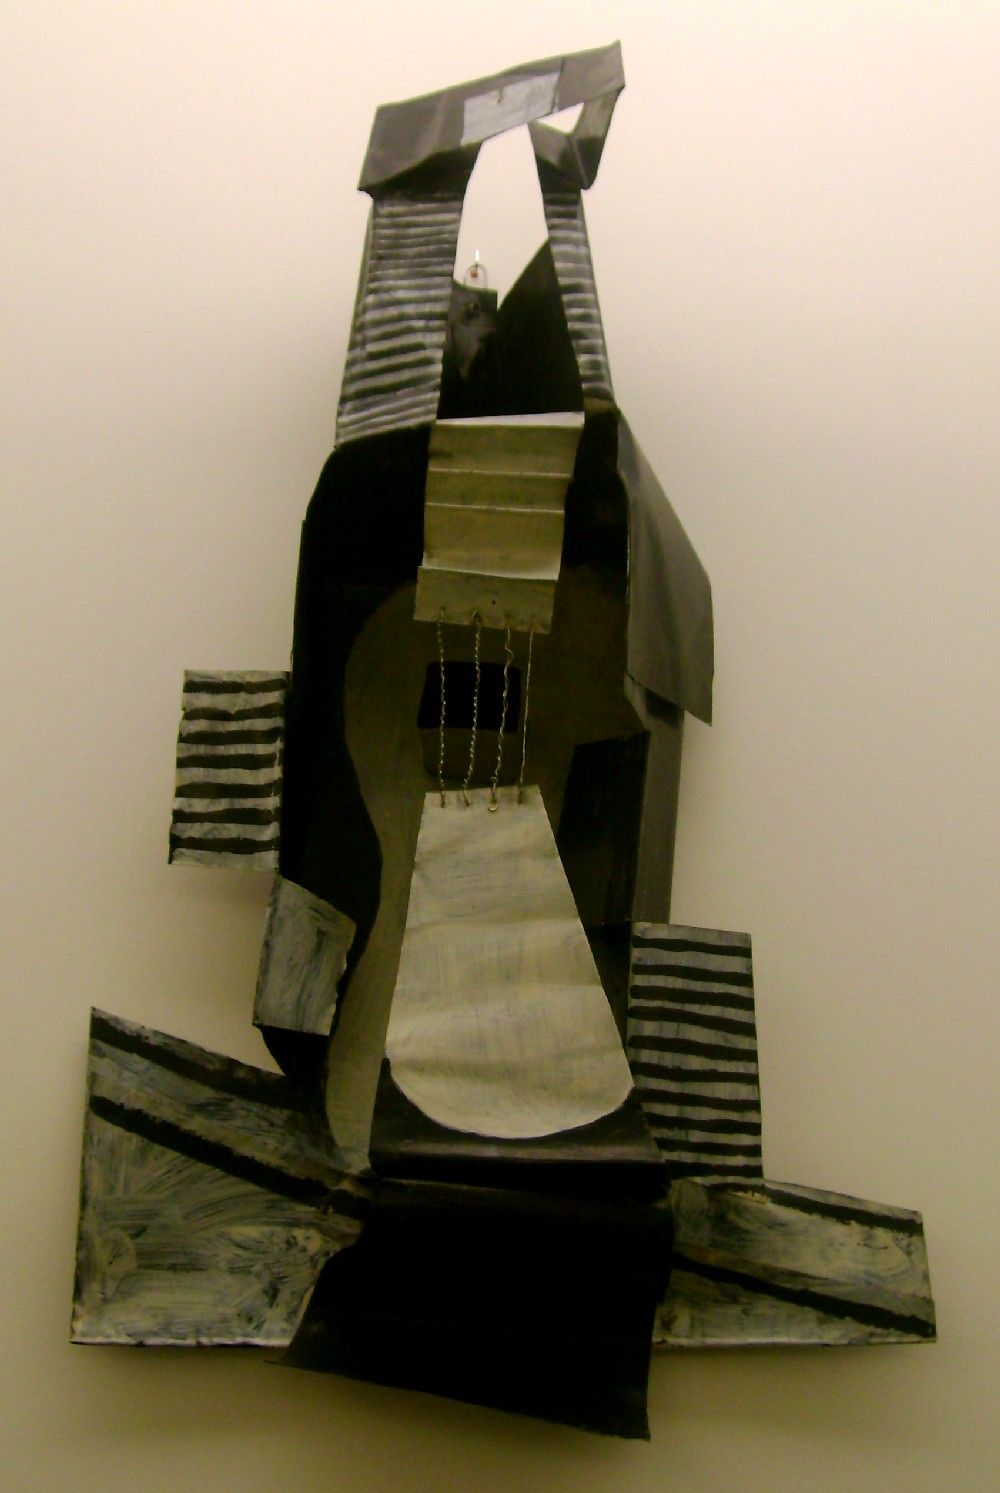 picasso guitar picasso went on to create d sculptures out guitar